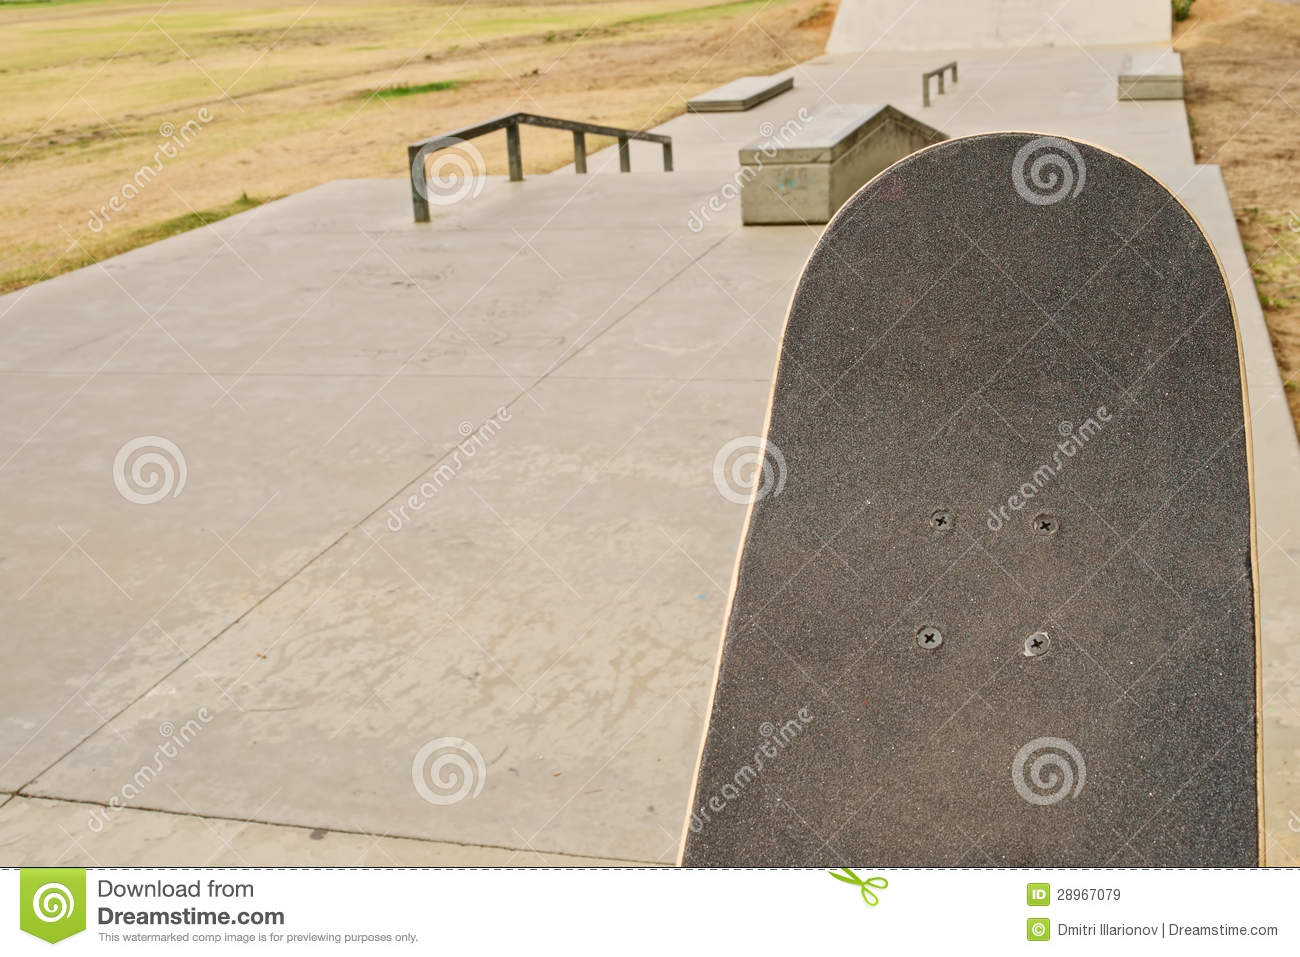 Skateboard Surface At Ramp Royalty Free Stock Images   Image  28967079